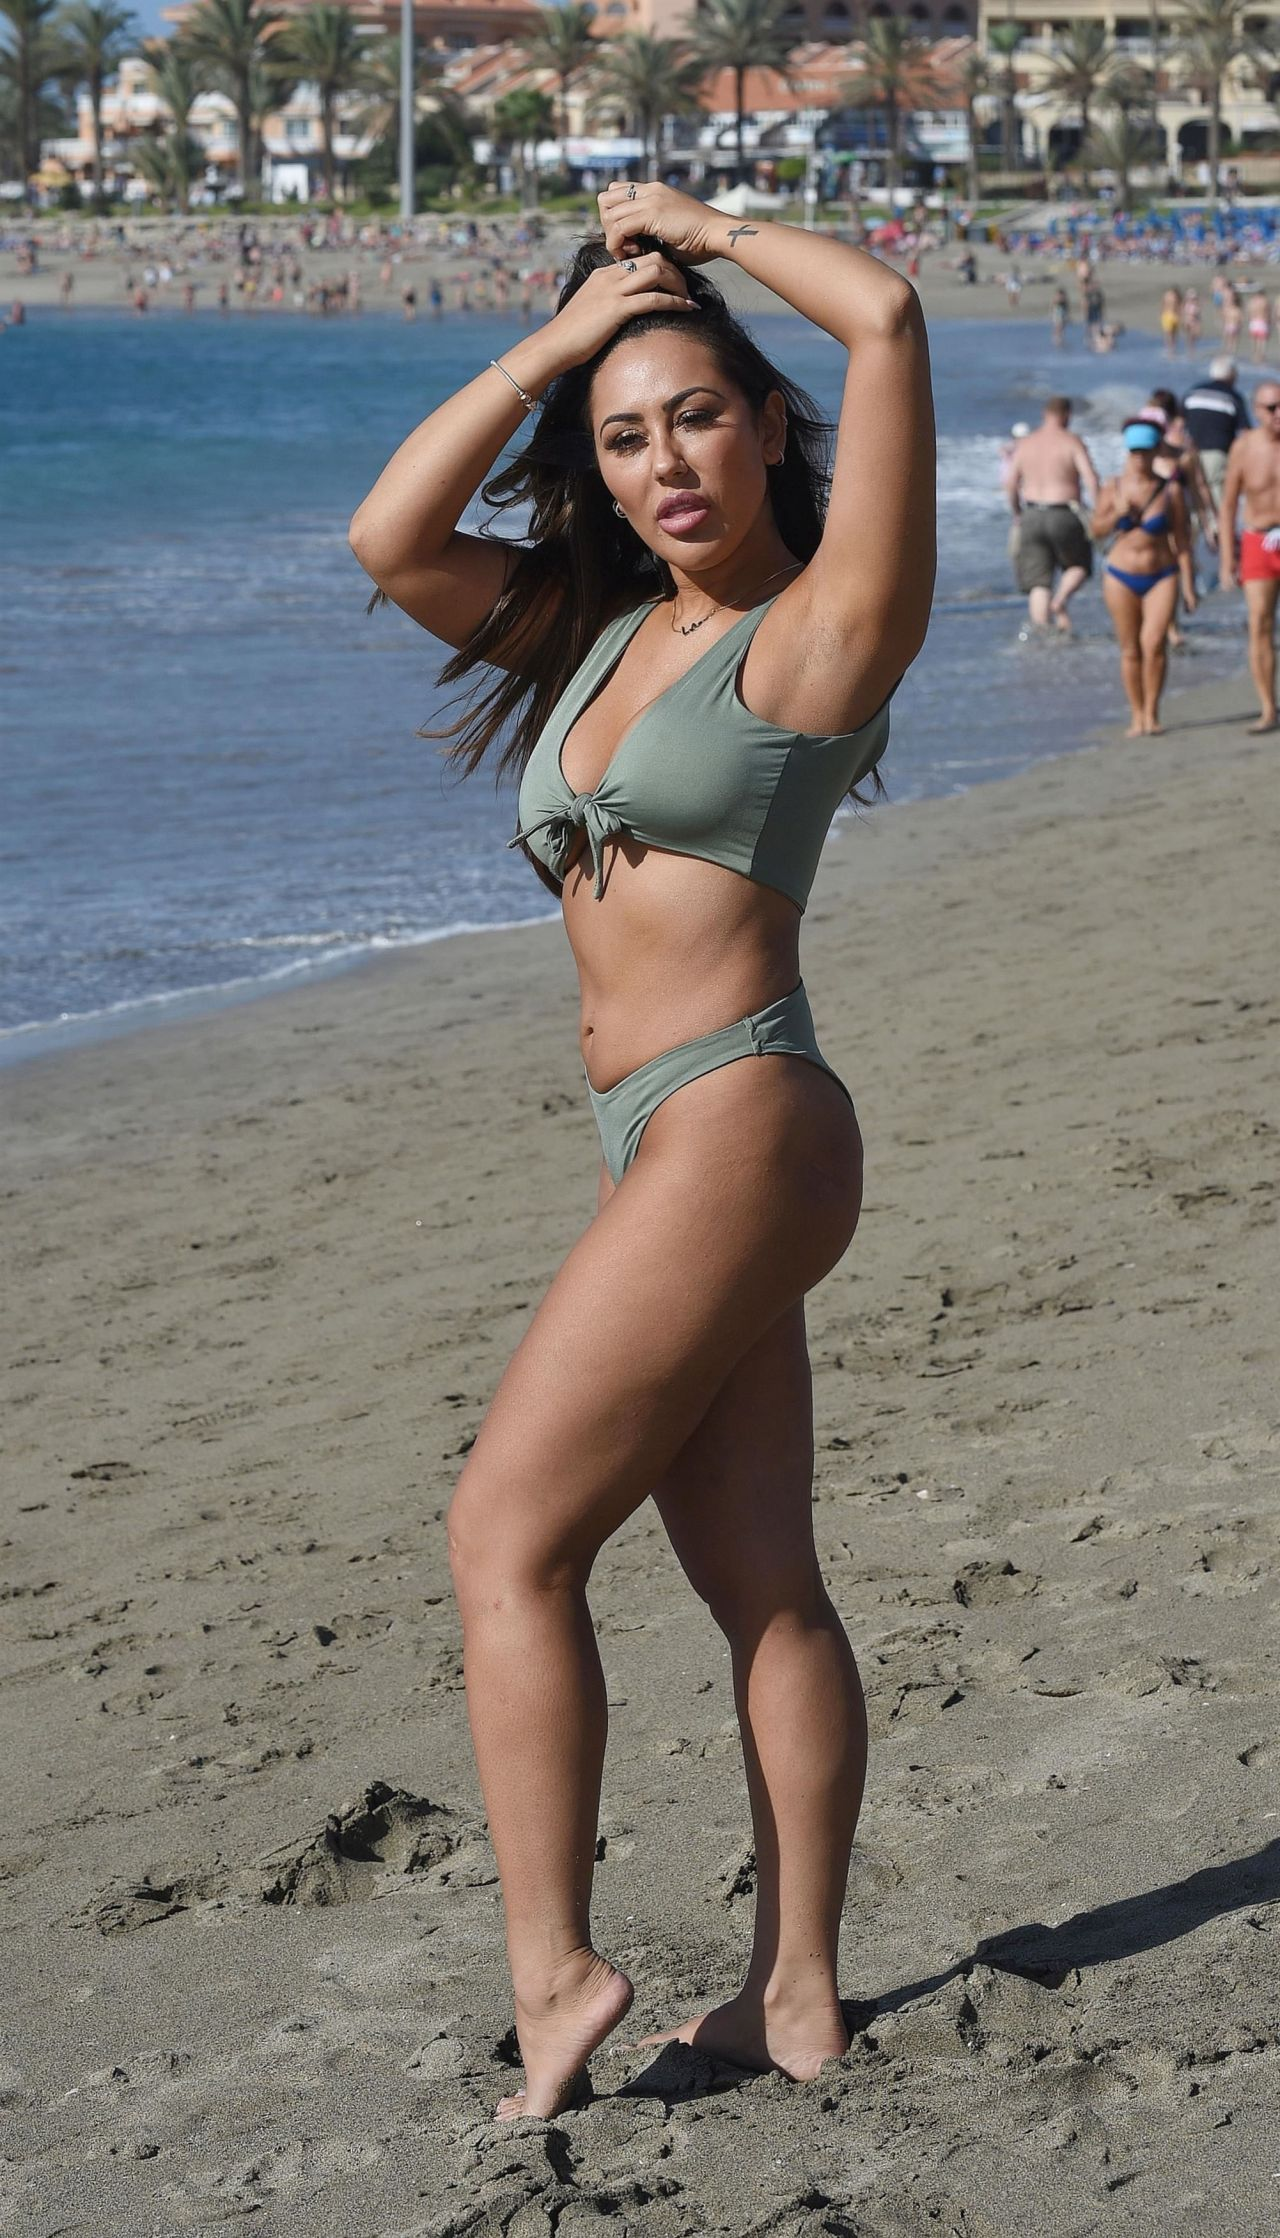 Sophie Kasaei in Black Bikini on holiday in Turkey Pic 1 of 35